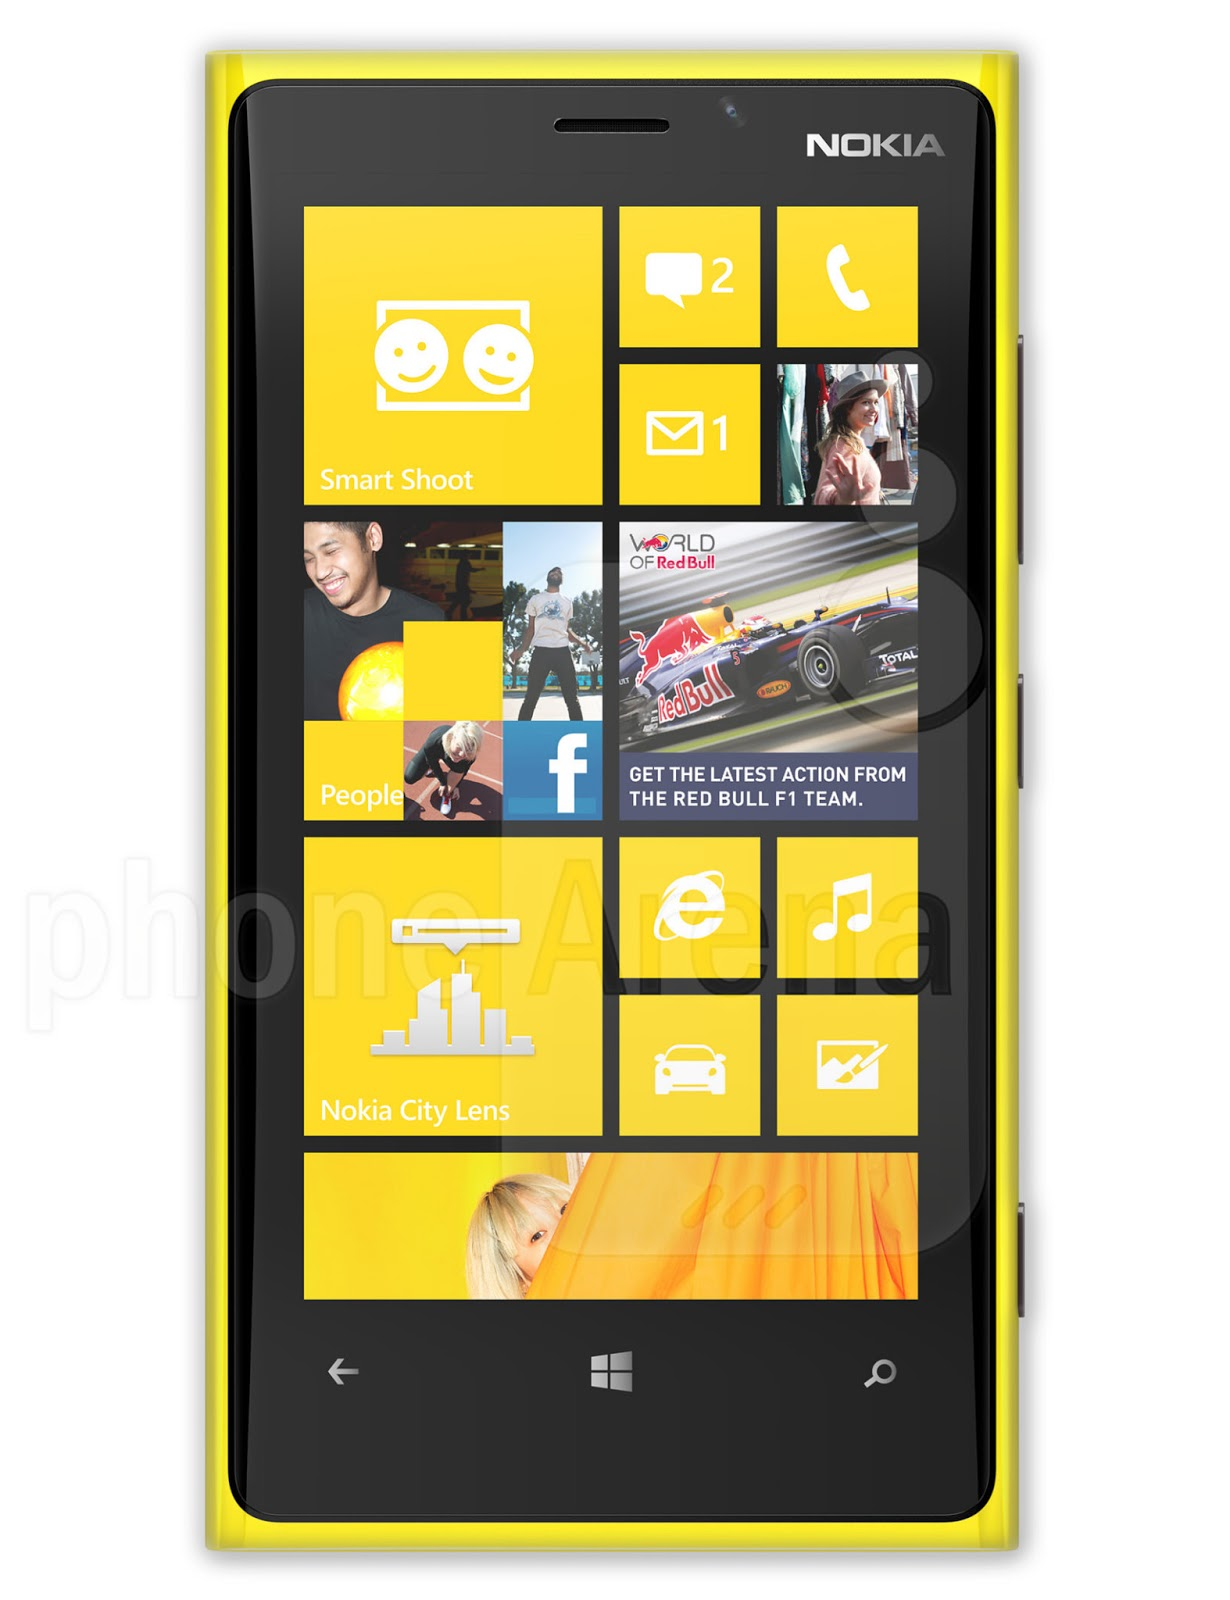 Trussty Jasmine It Thing Amazon Ceo Files Patent Application For An Airbag System That Protects Smart Phones Lumia 920 Is Good News Windows Phone 8 Made By Microsoft Which Trying To Compete With Googles Android Operating And Apples Ios